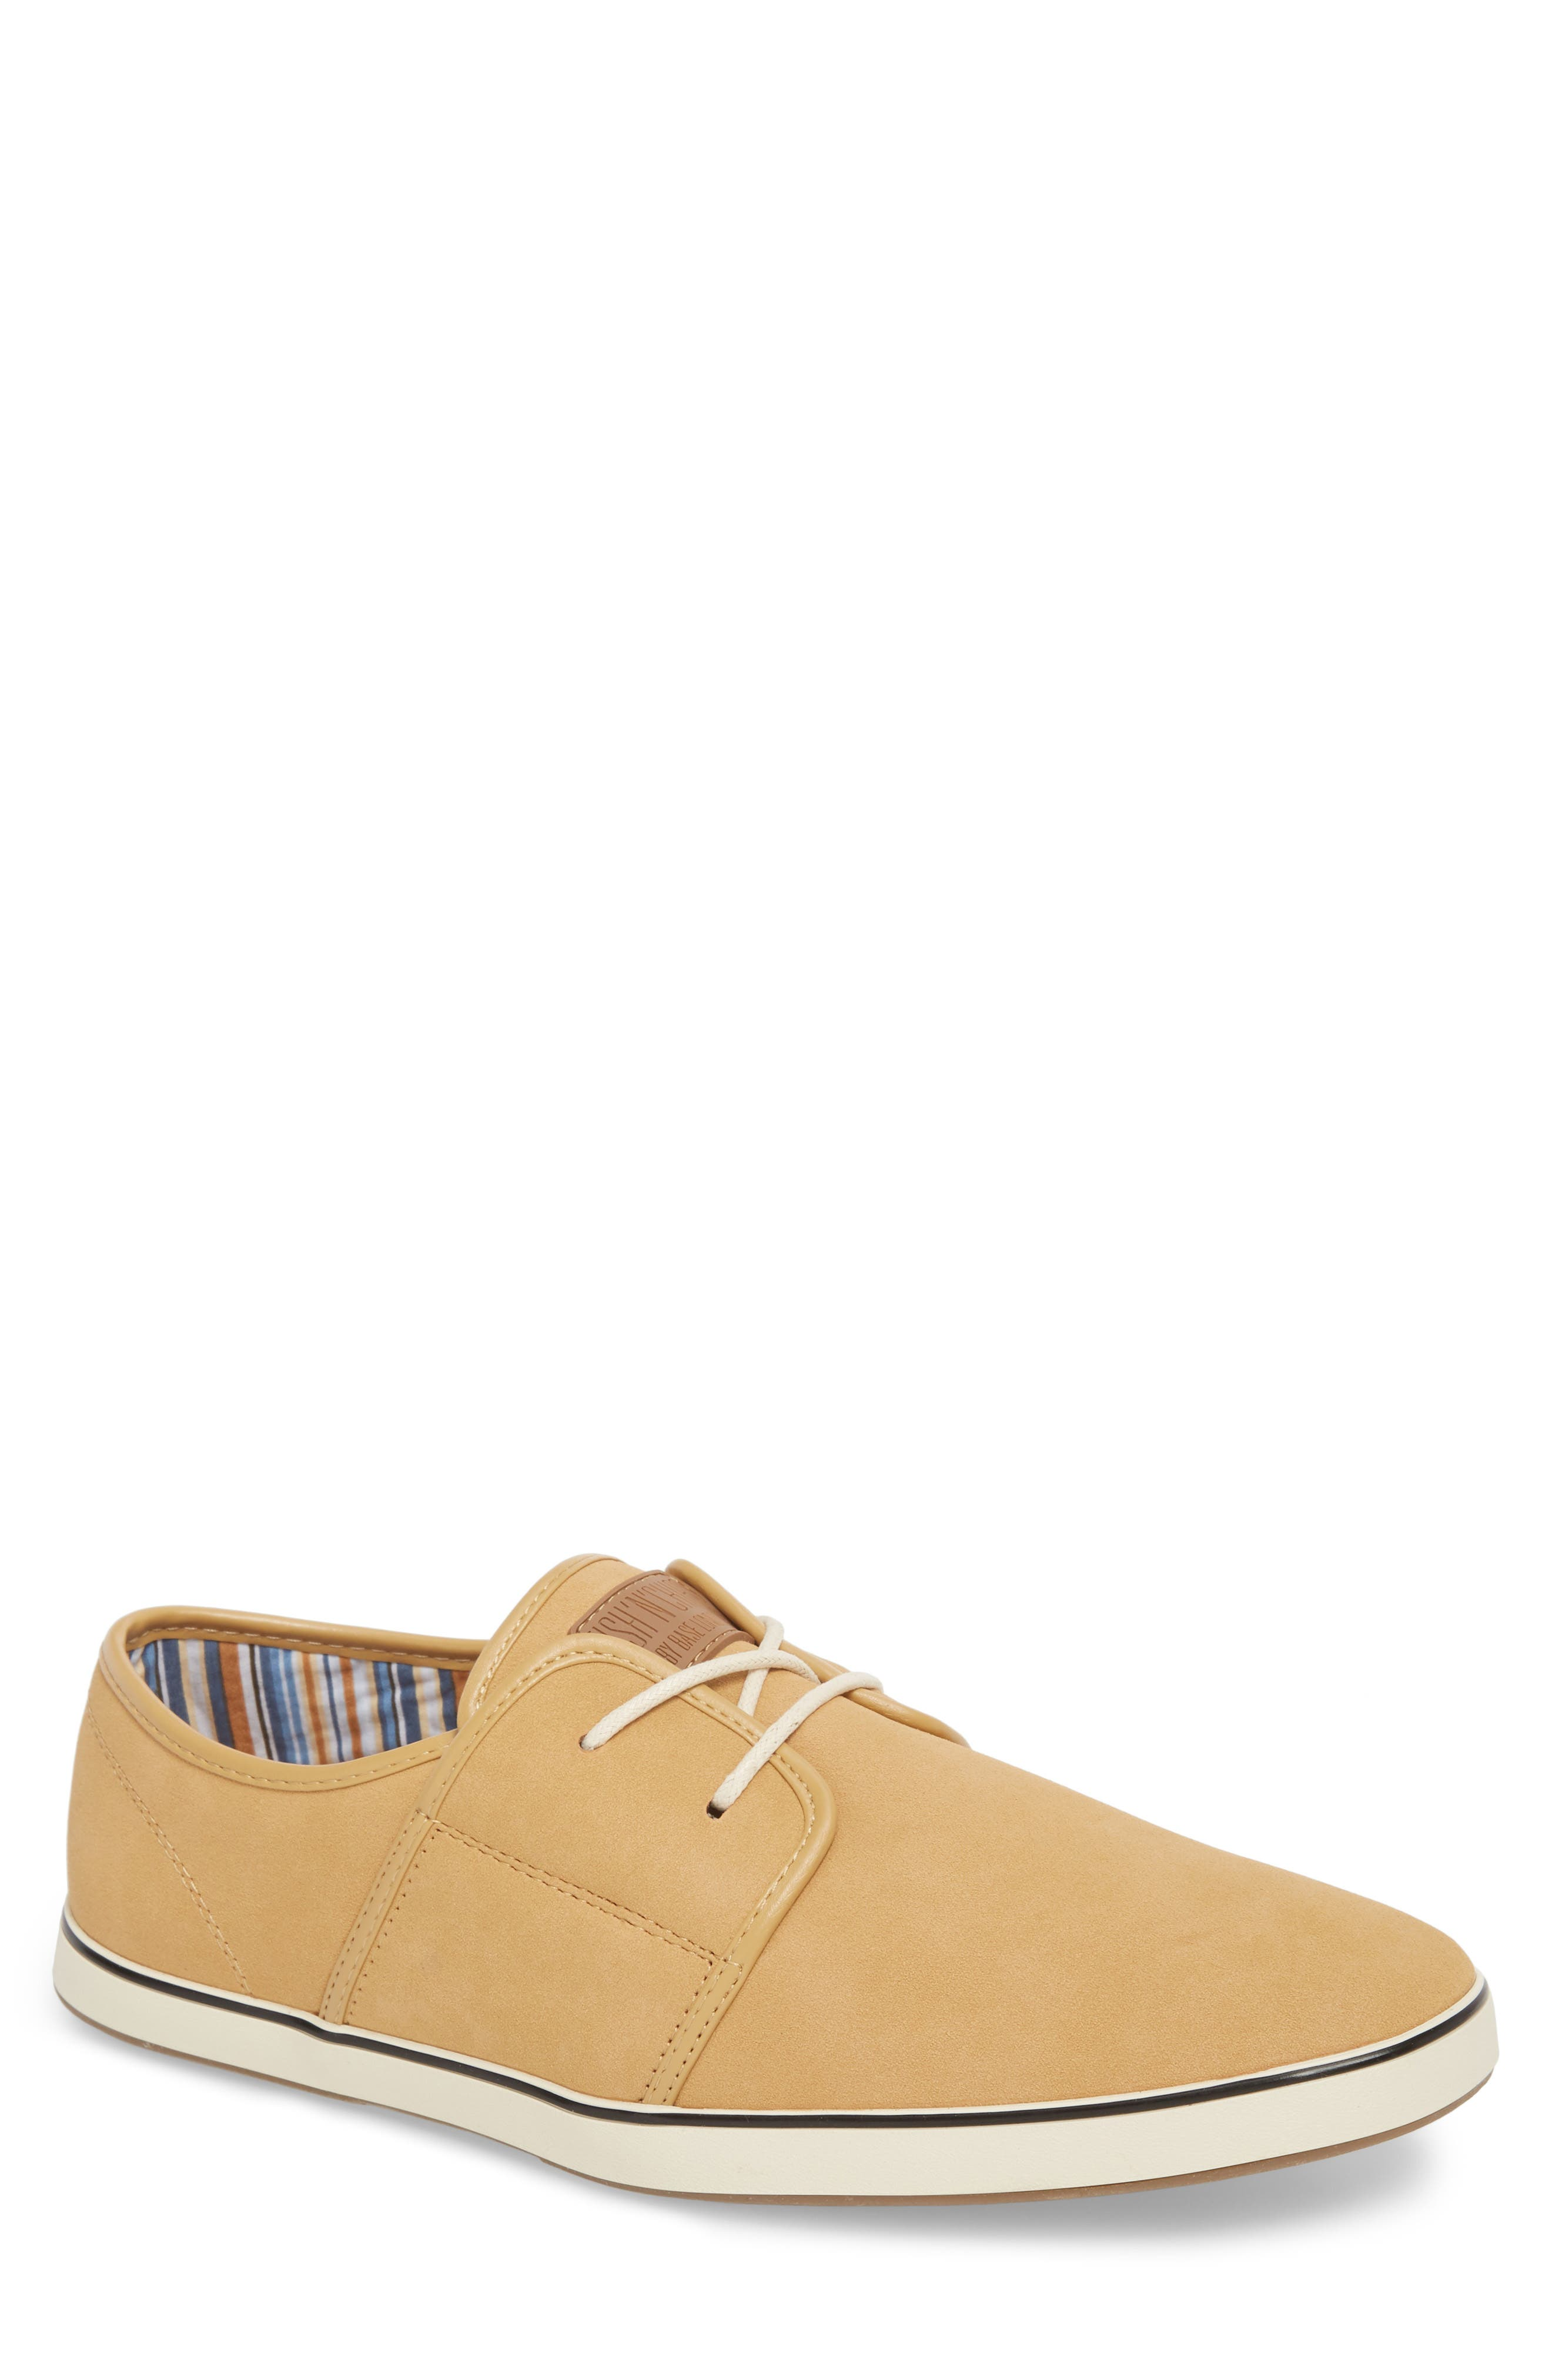 Fish 'N' Chips Surrey Low Top Sneaker,                         Main,                         color, SOFT BROWN FAUX SUEDE